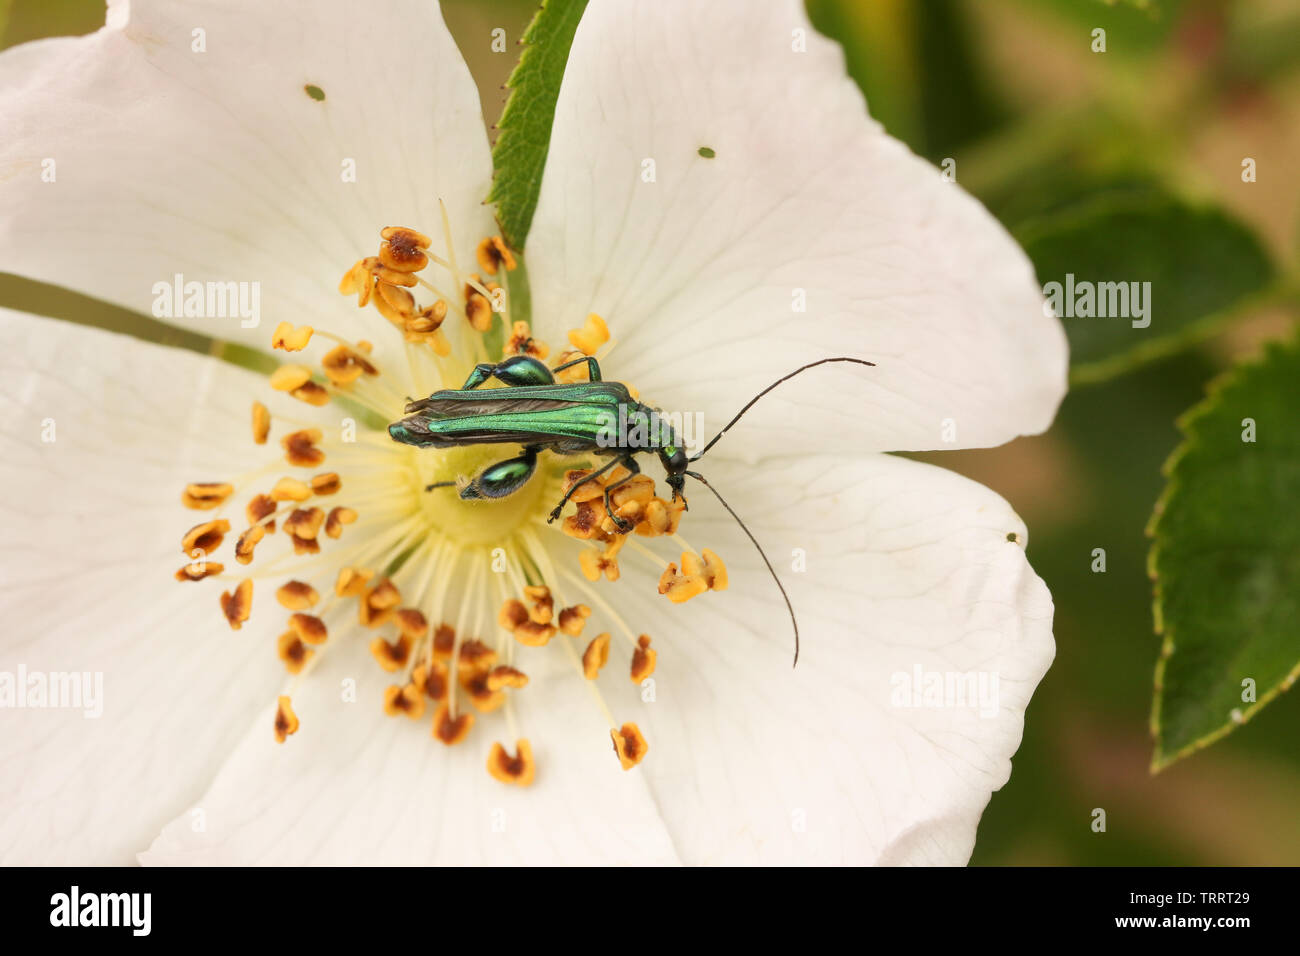 A pretty male Swollen-thighed Flower Beetle, Oedemera nobilis, nectaring on a wild dog rose flower. - Stock Image